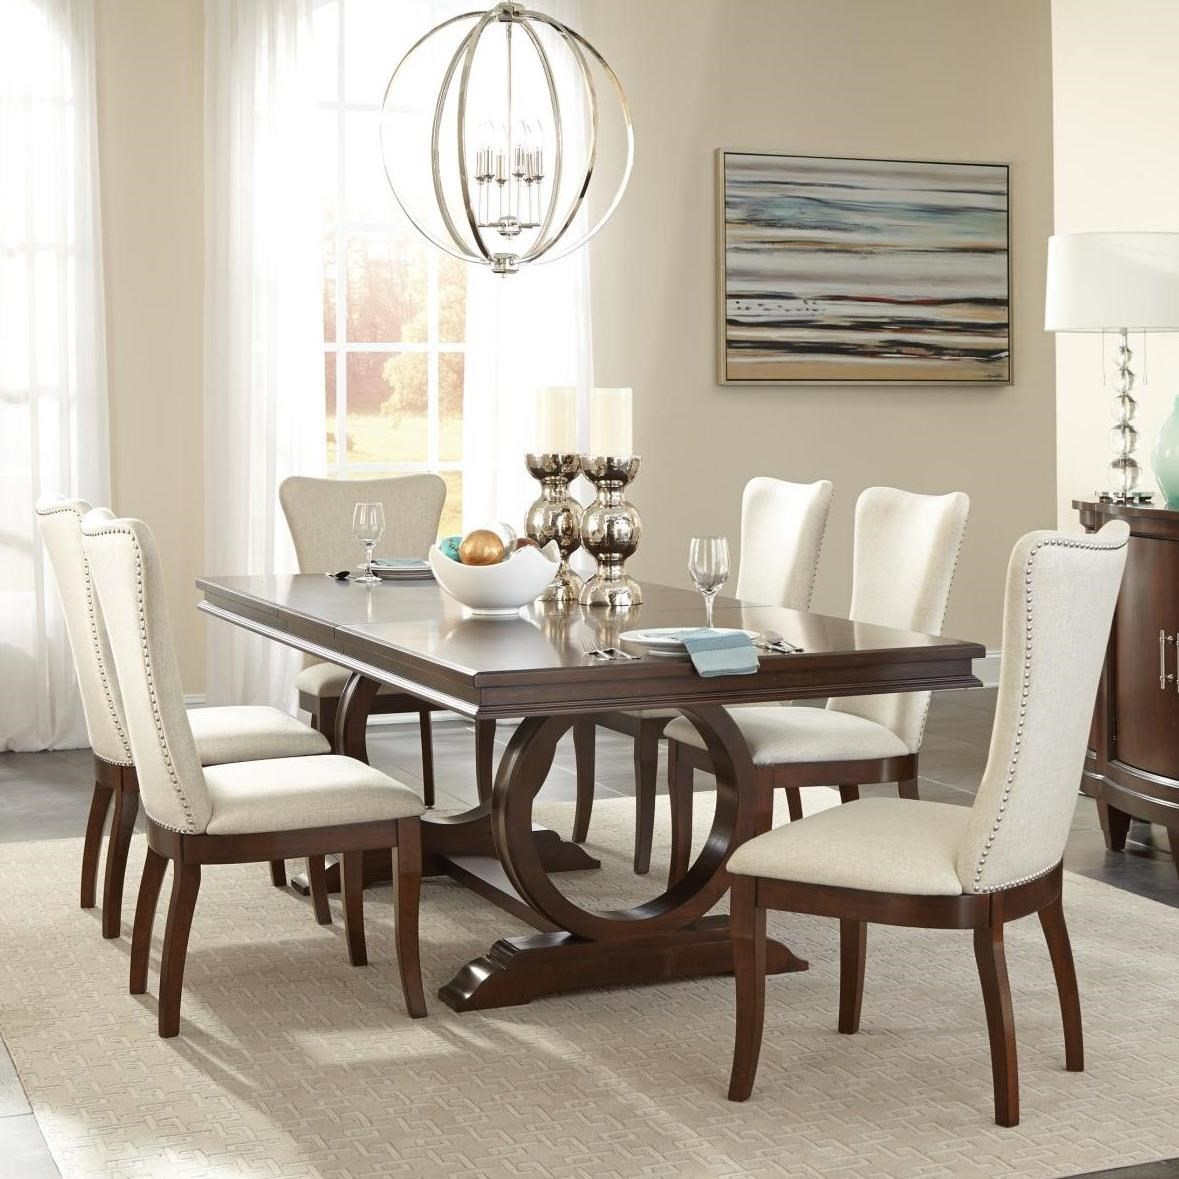 Oratorio Seven Piece Dining Set by Homelegance at Darvin Furniture